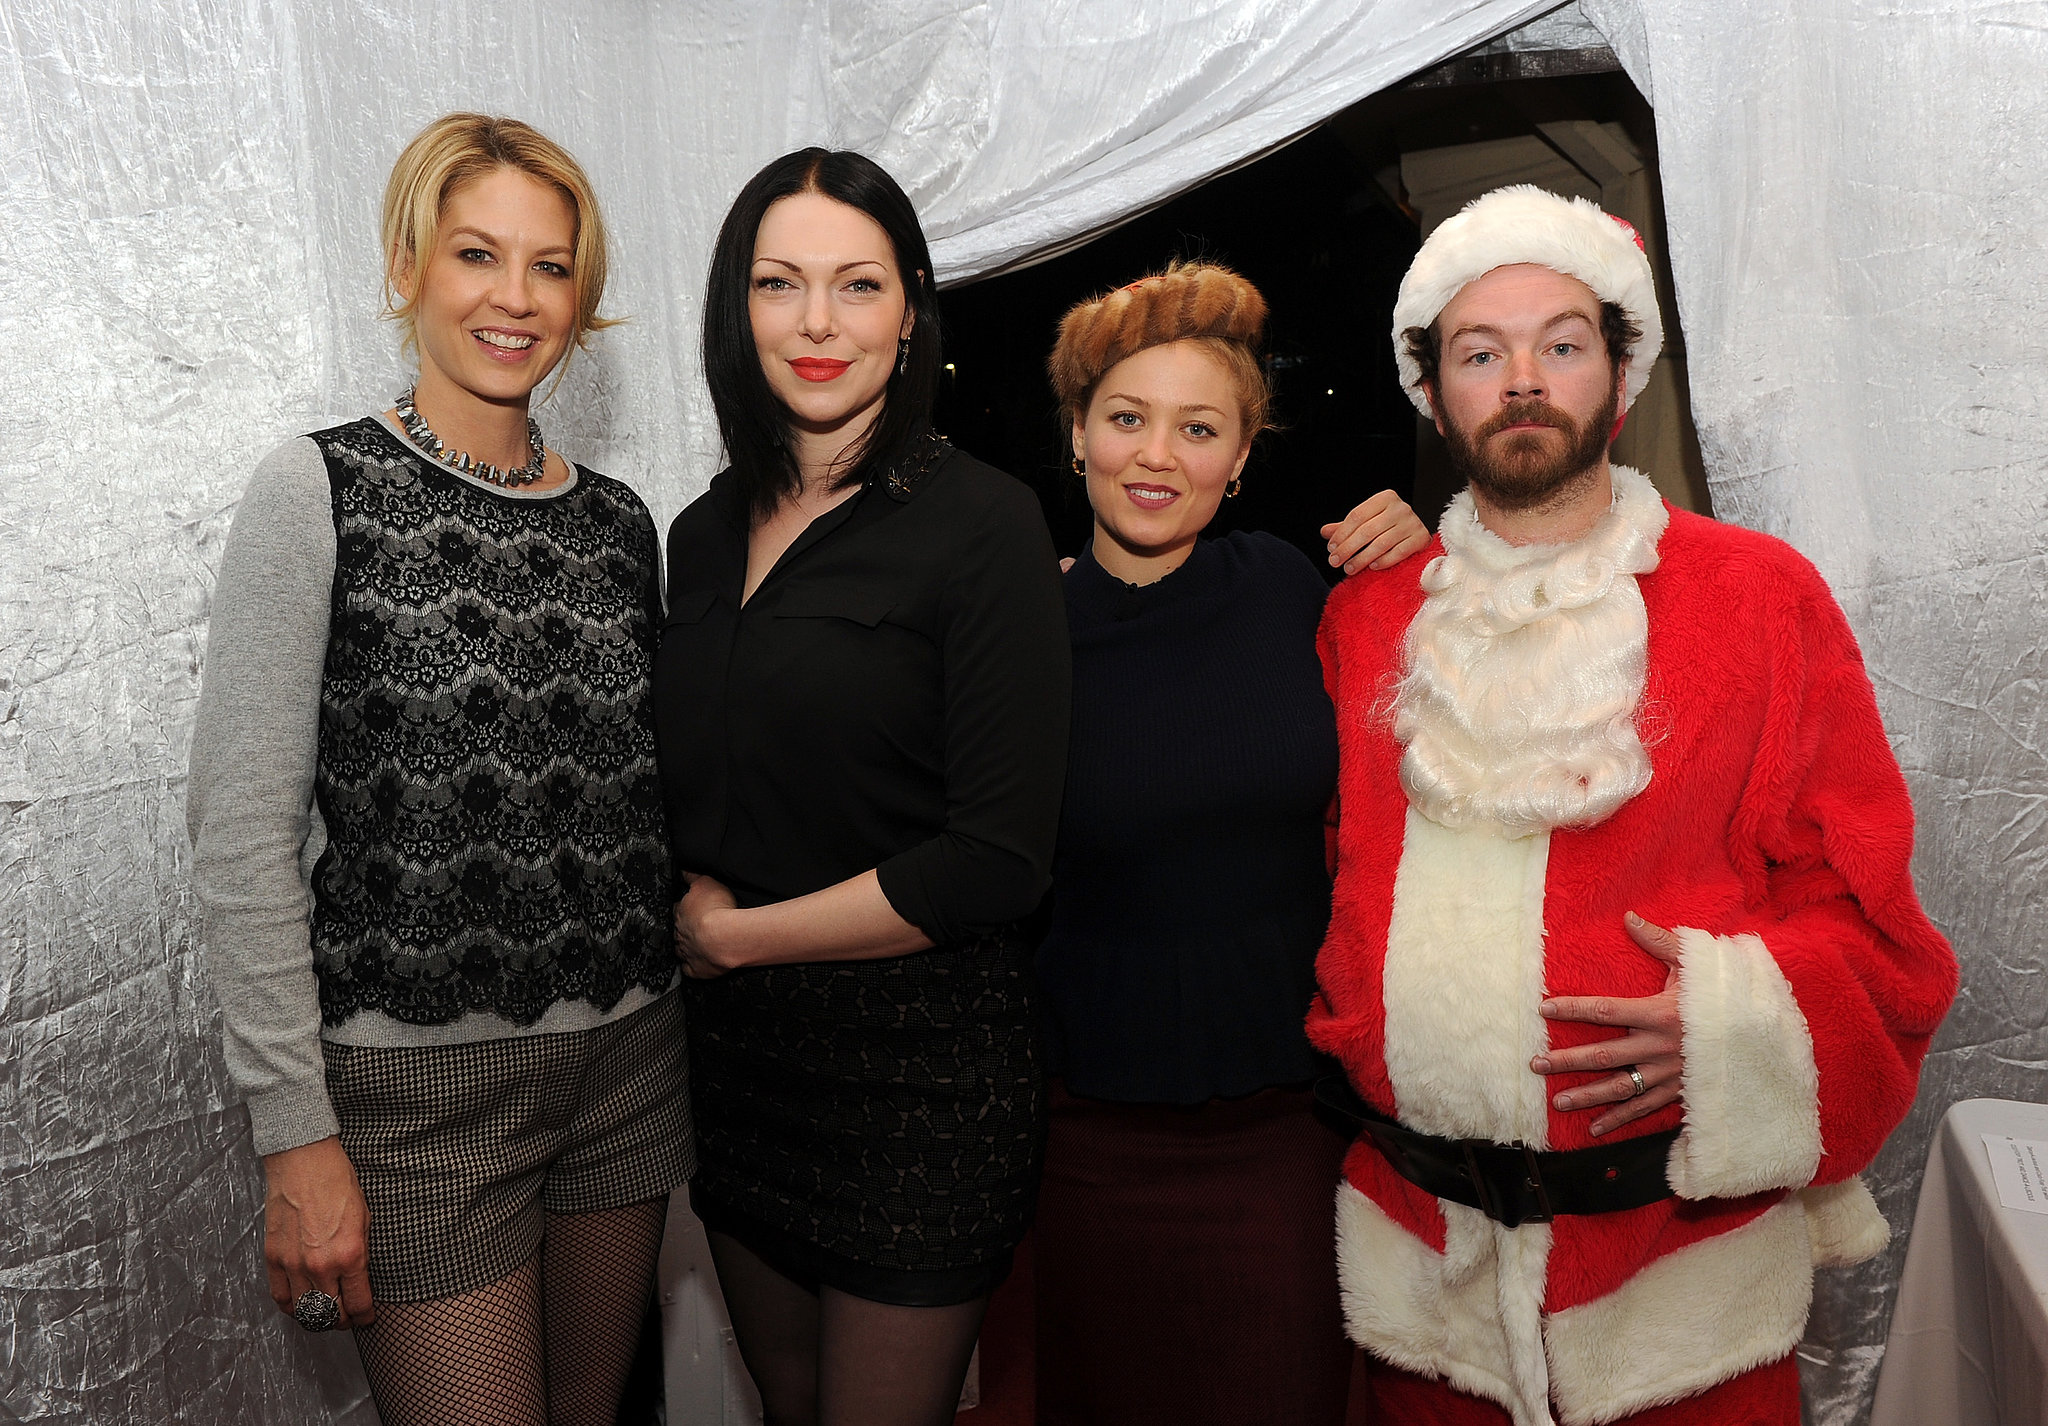 Jenna Elfman, Laura Prepon, Erika Christensen, and Danny Masterson attended the Church of Scientology Christmas Stories event in LA.